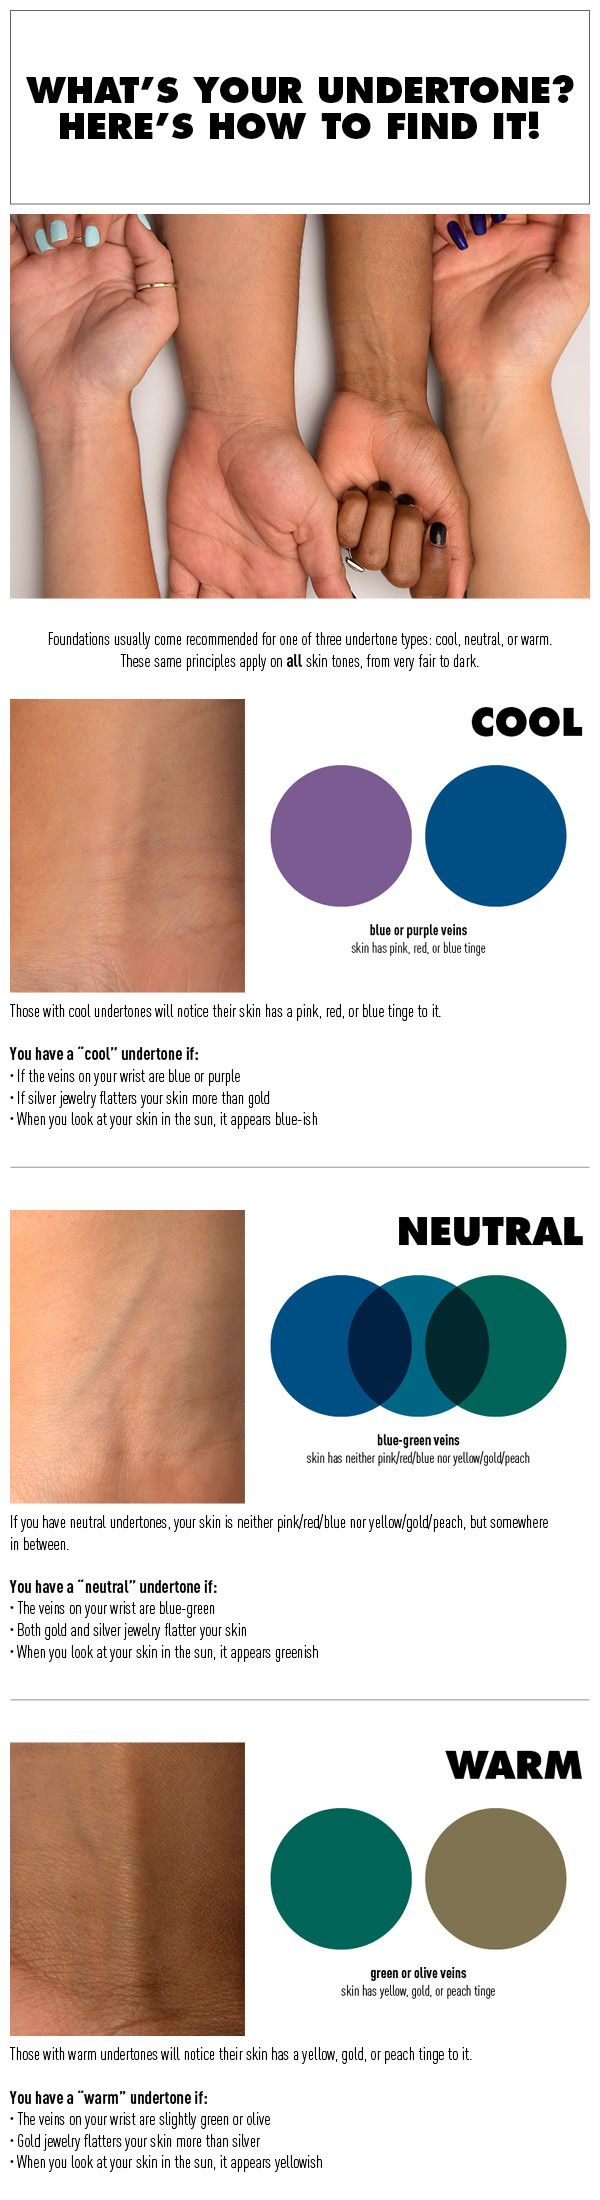 How to Find Your Undertone and Choose the Right Foundation